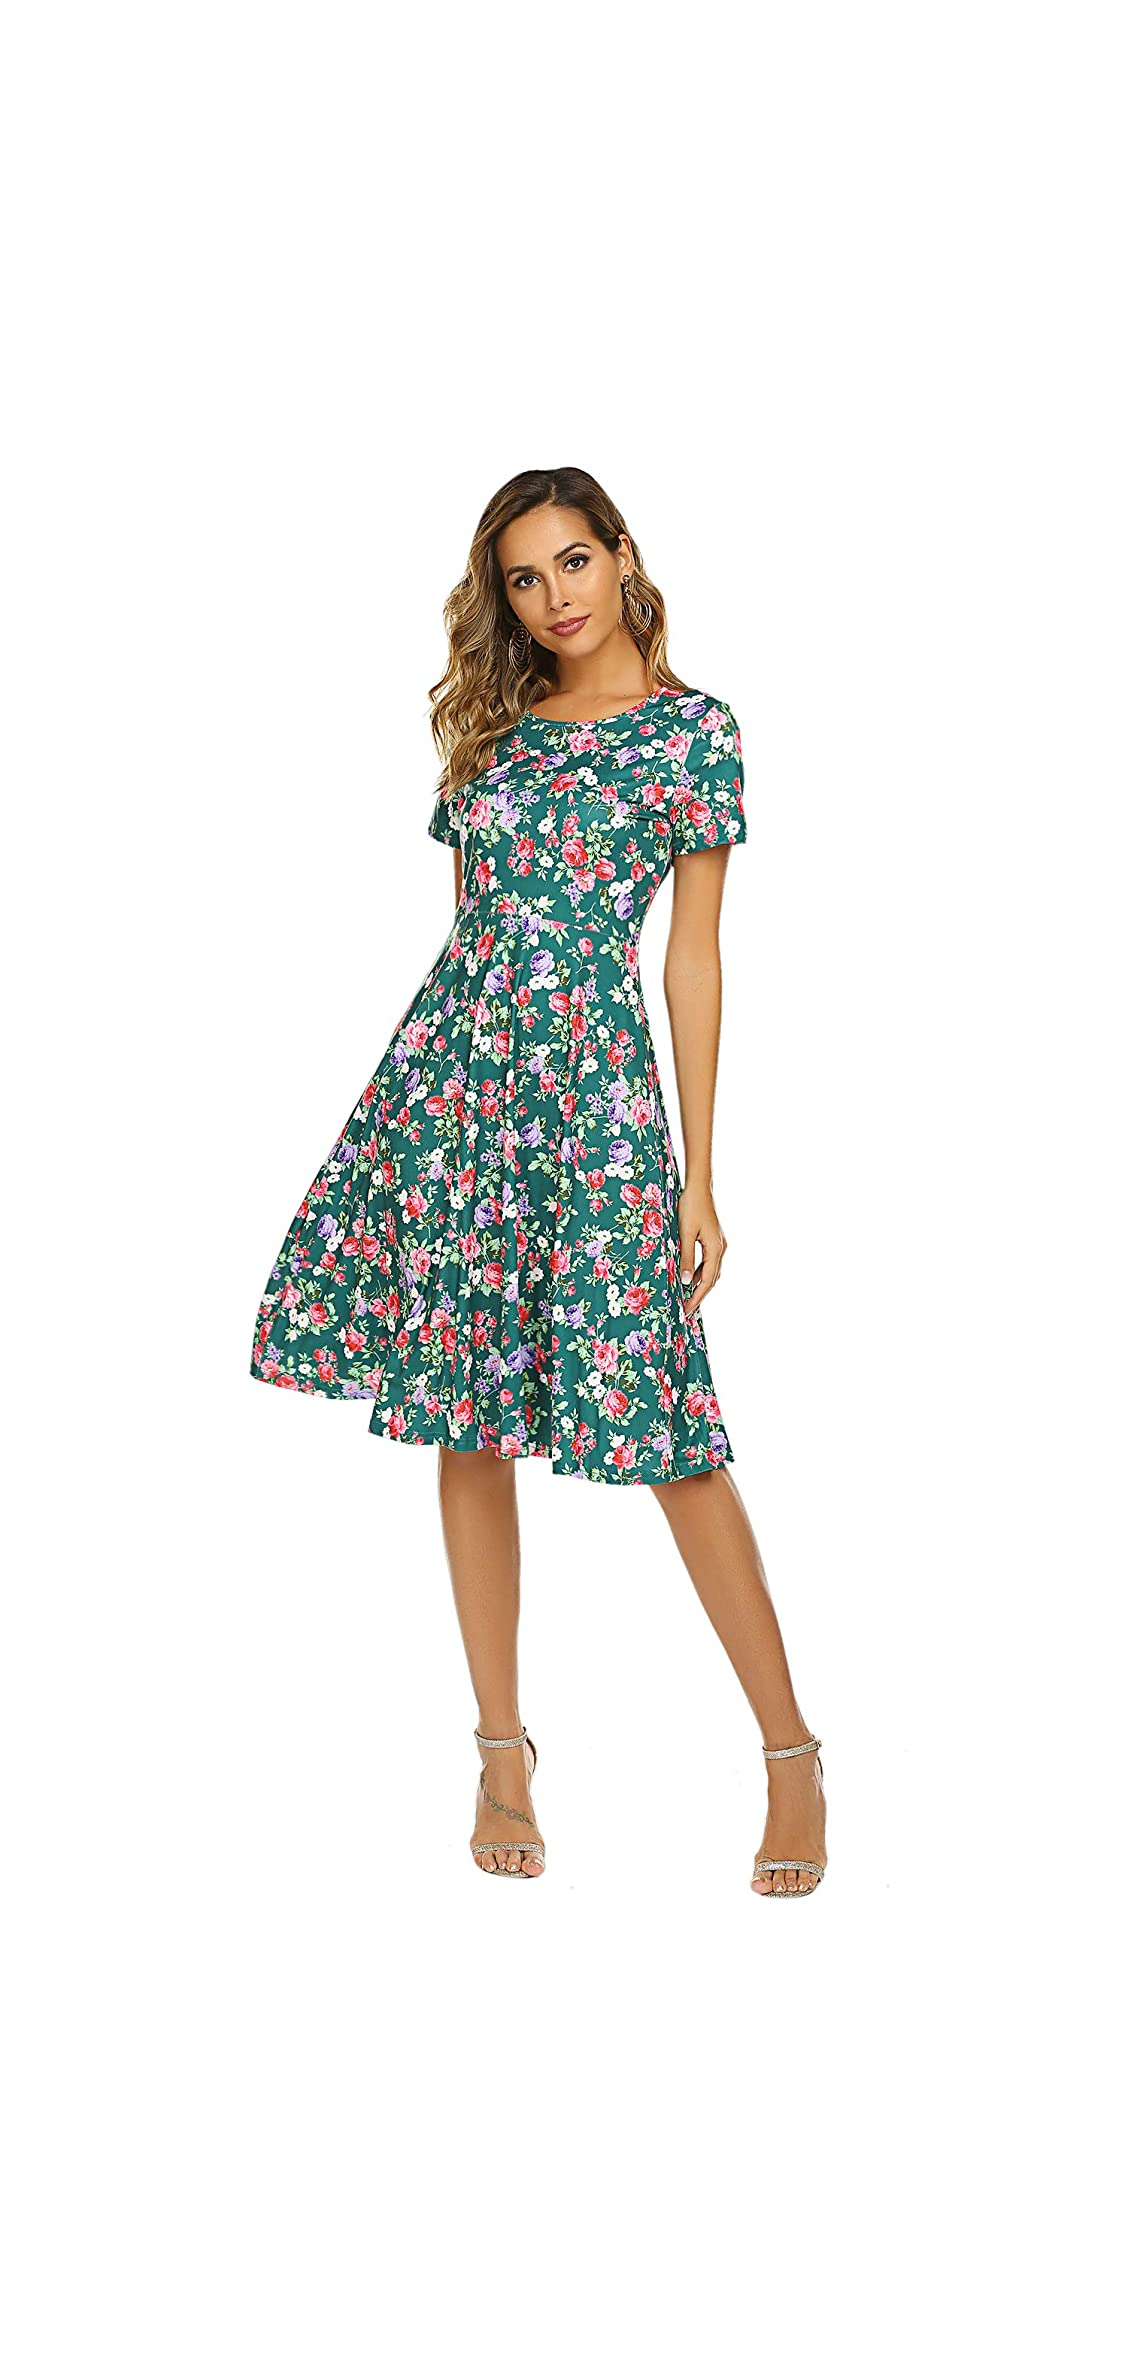 Women's Summer Casual Floral Print Short Sleeve Flared Midi